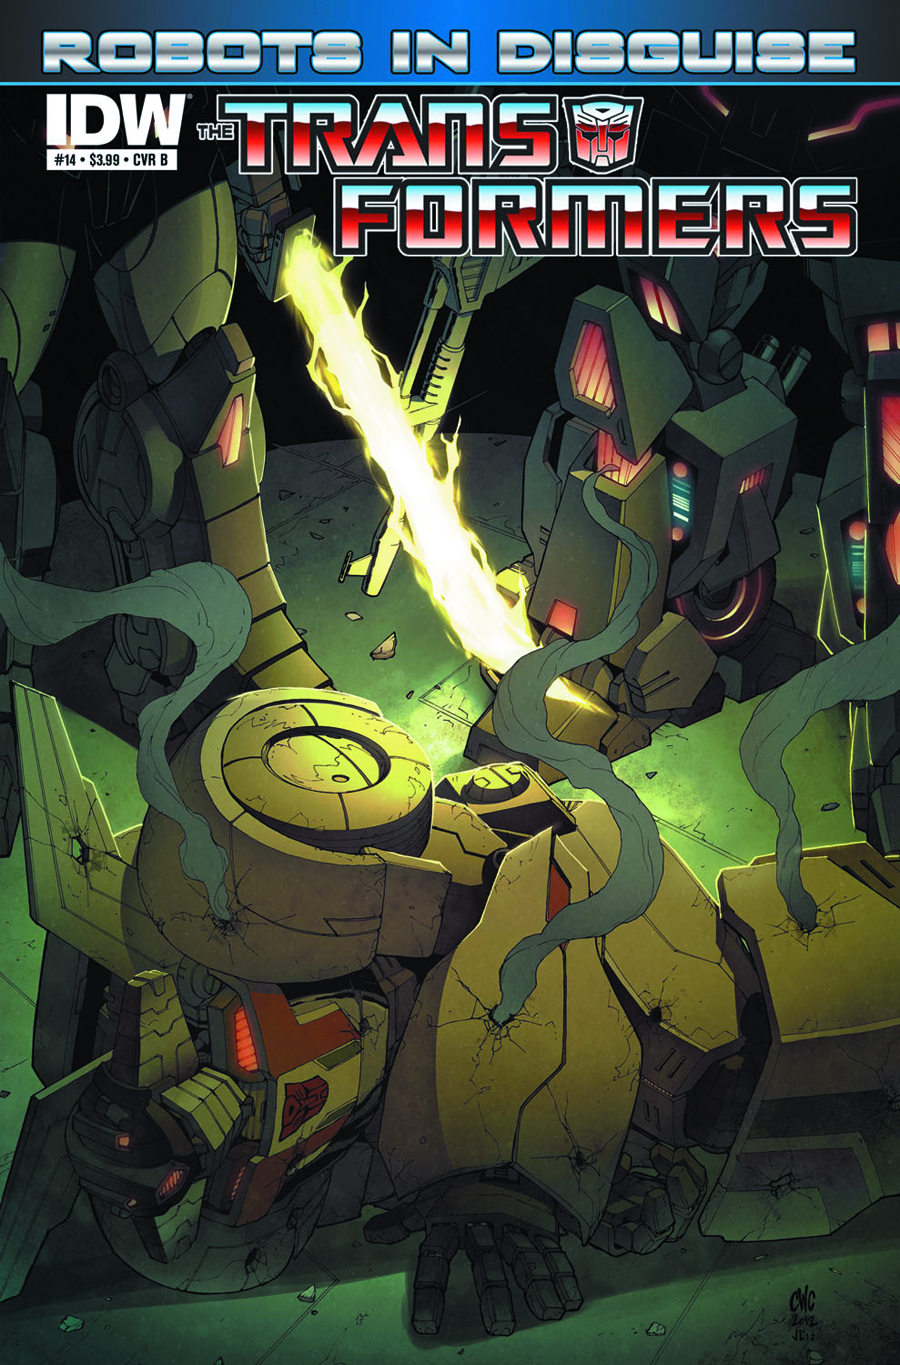 TRANSFORMERS ROBOTS IN DISGUISE #14